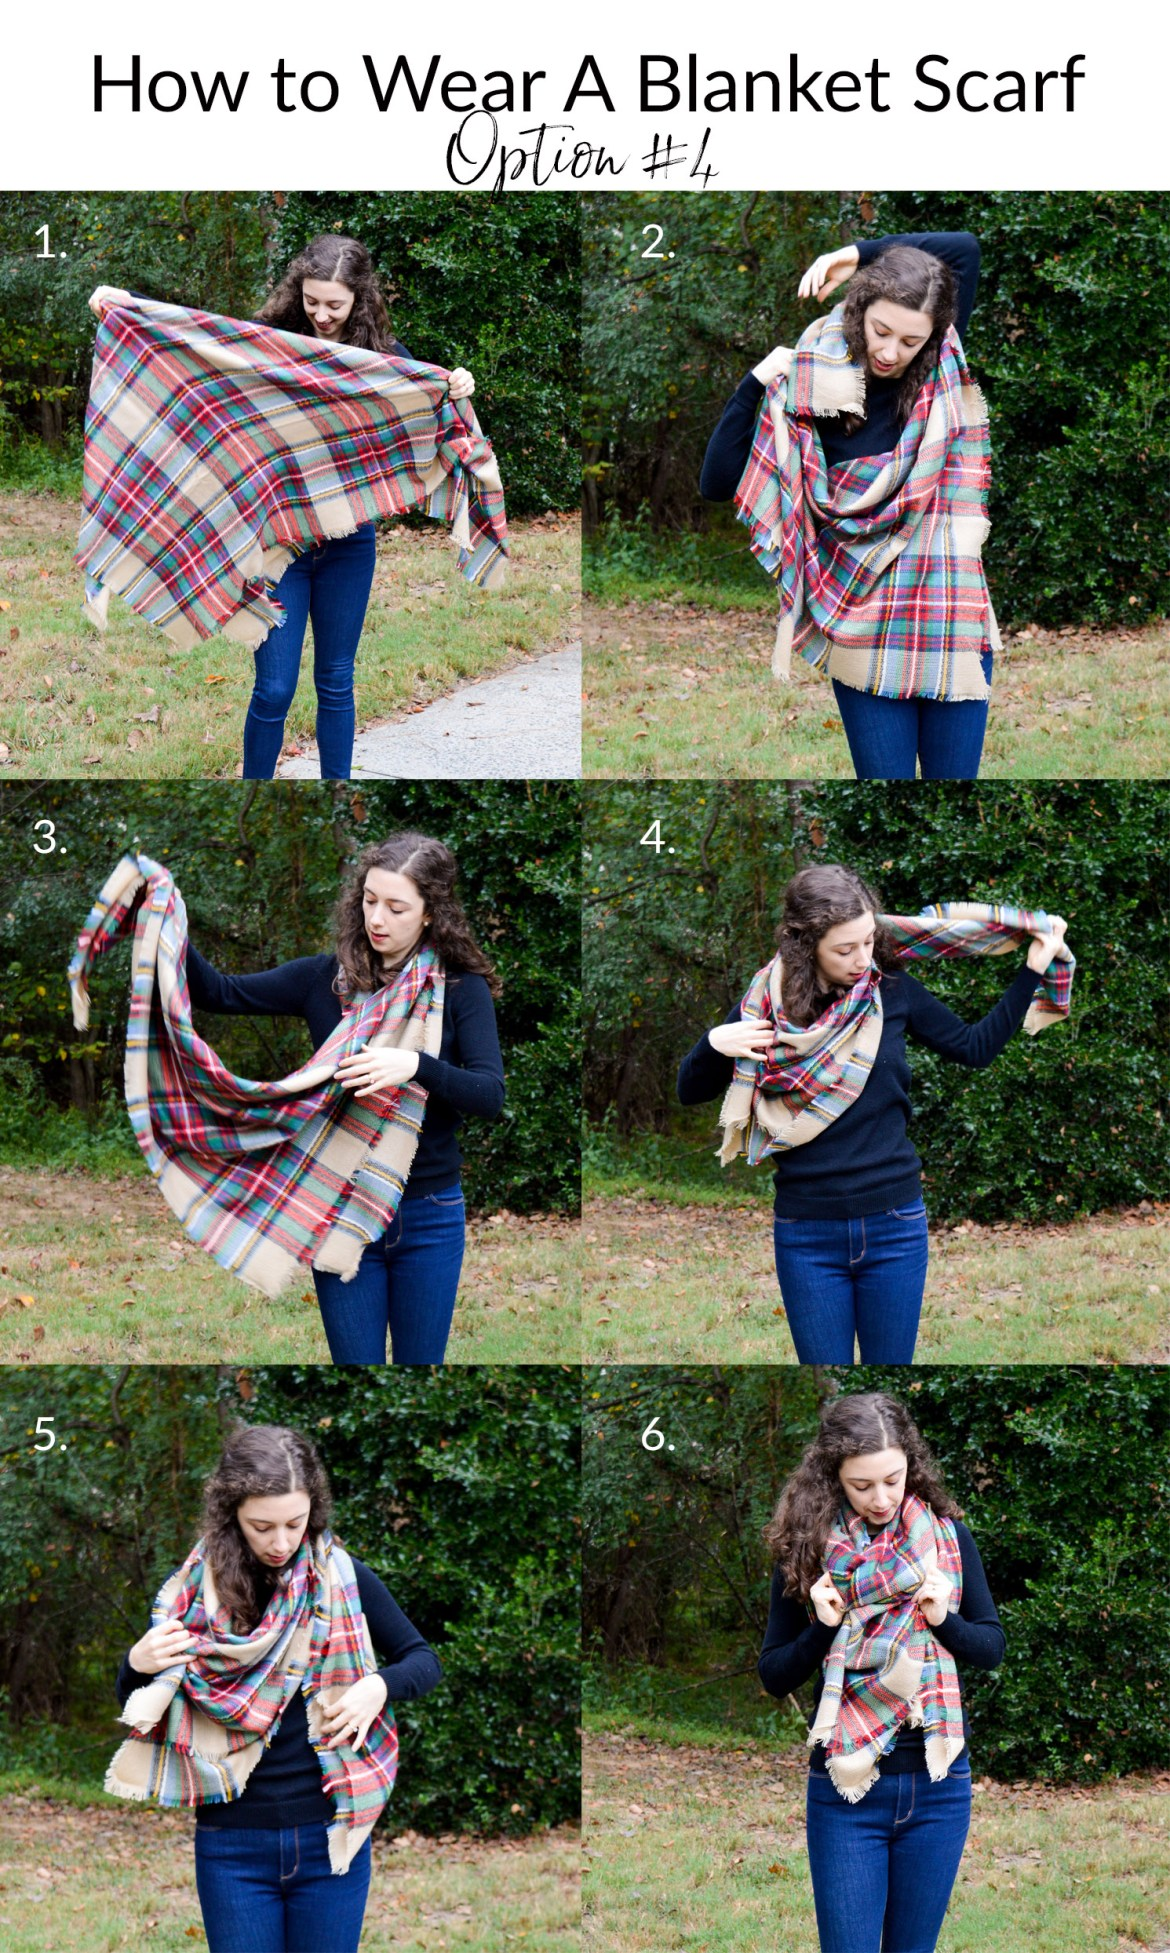 The best way to wear a blanket scarf | Step-by-Step Tutorial on Hunting for Pink Flamingos